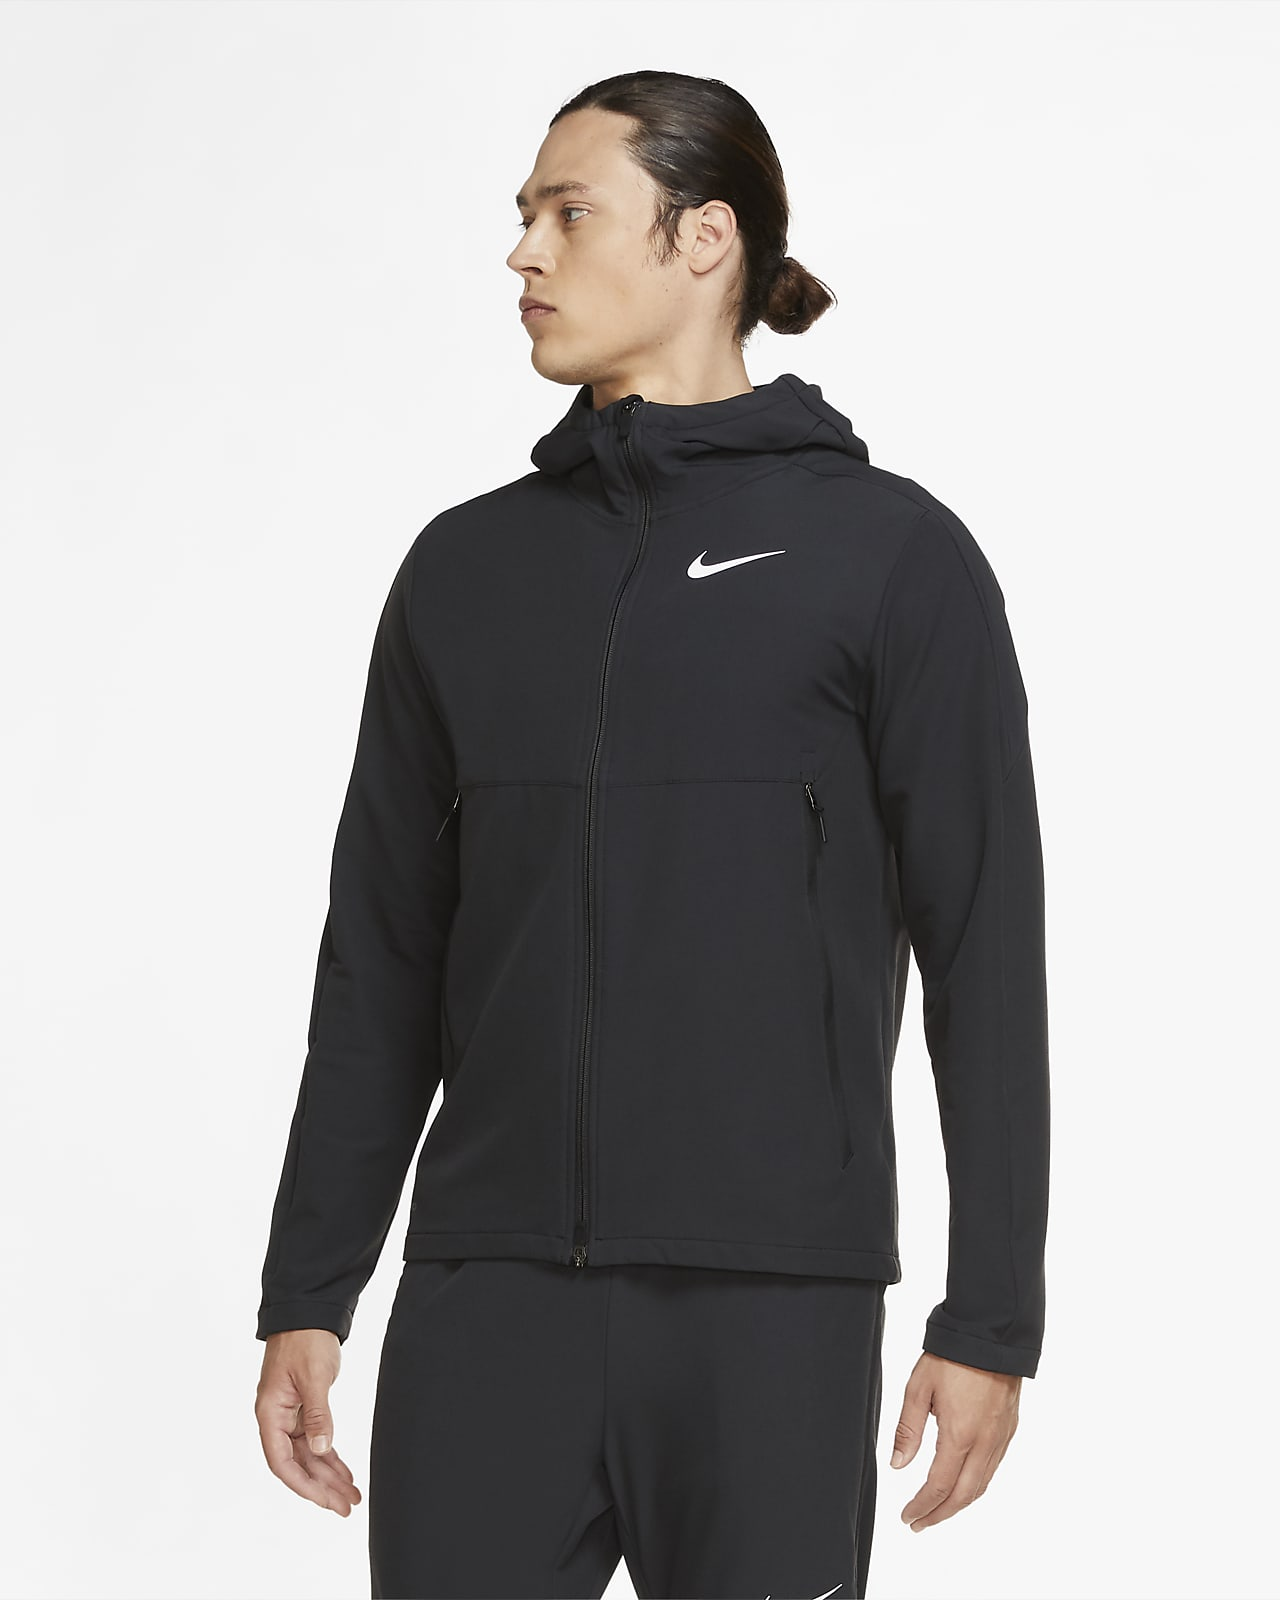 Espectacular Política Composición  Nike Men's Winterised Woven Training Jacket. Nike GB